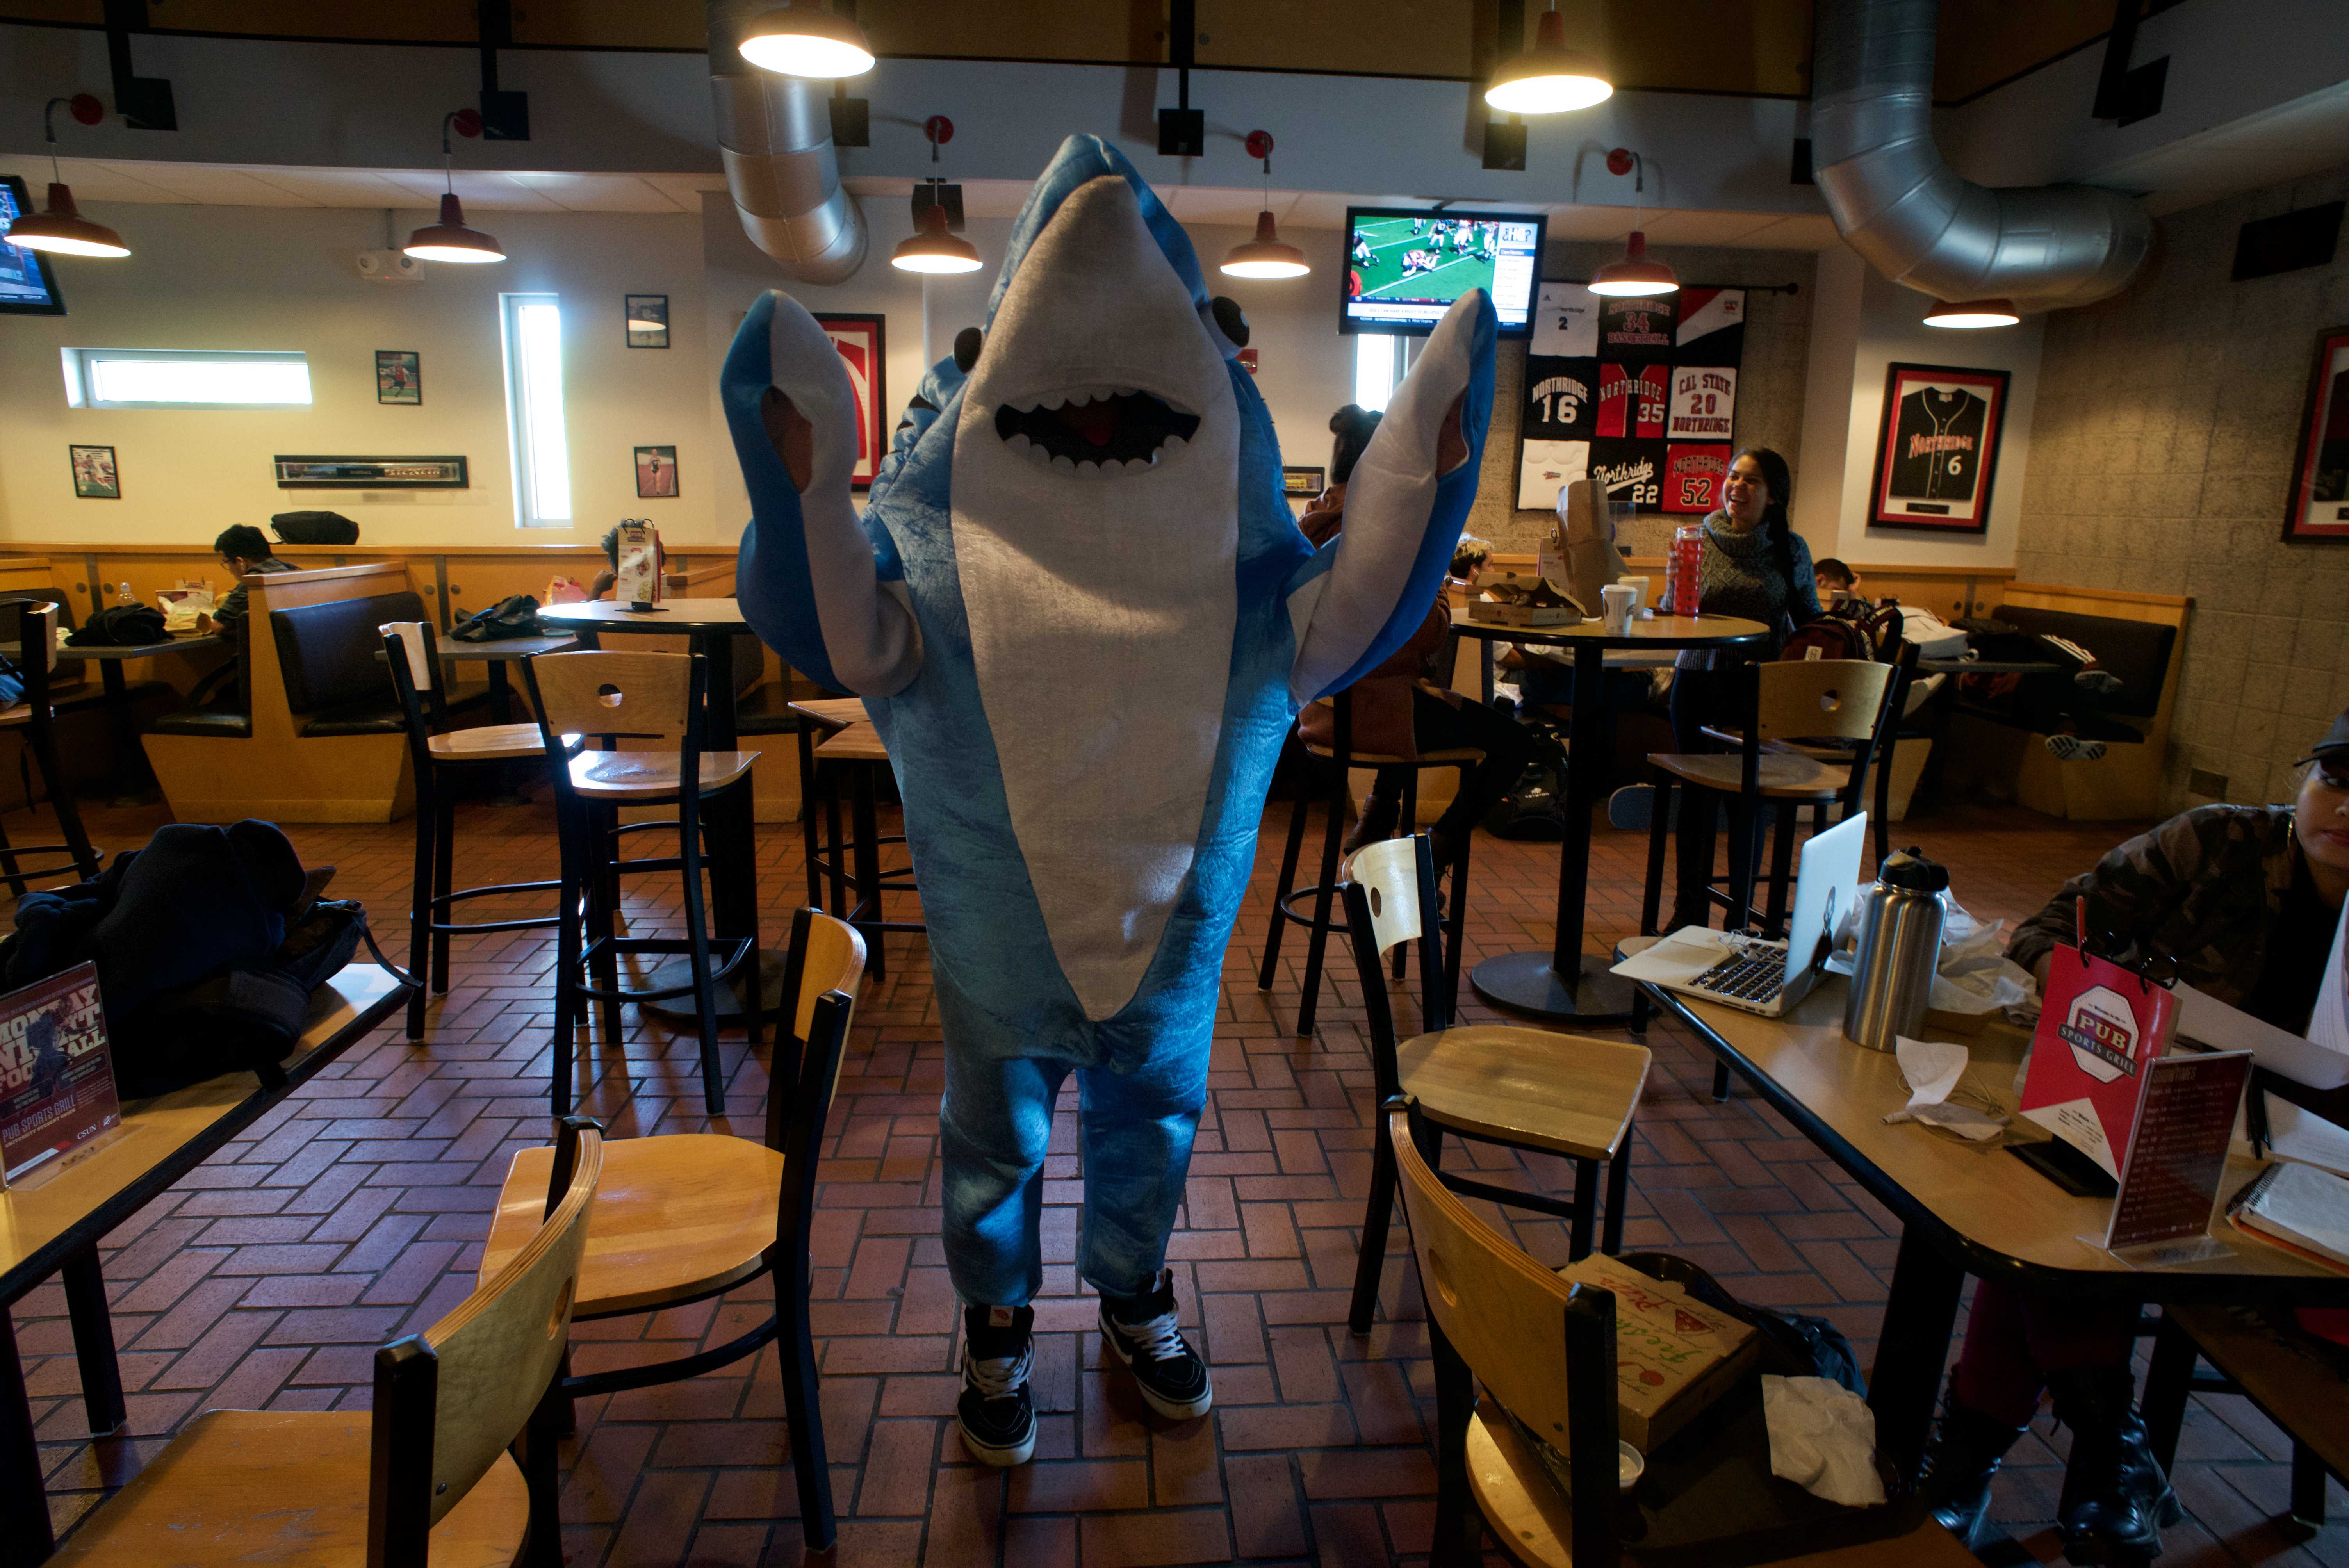 Student dressed up as a shark from Katy Perry's superbowl performance